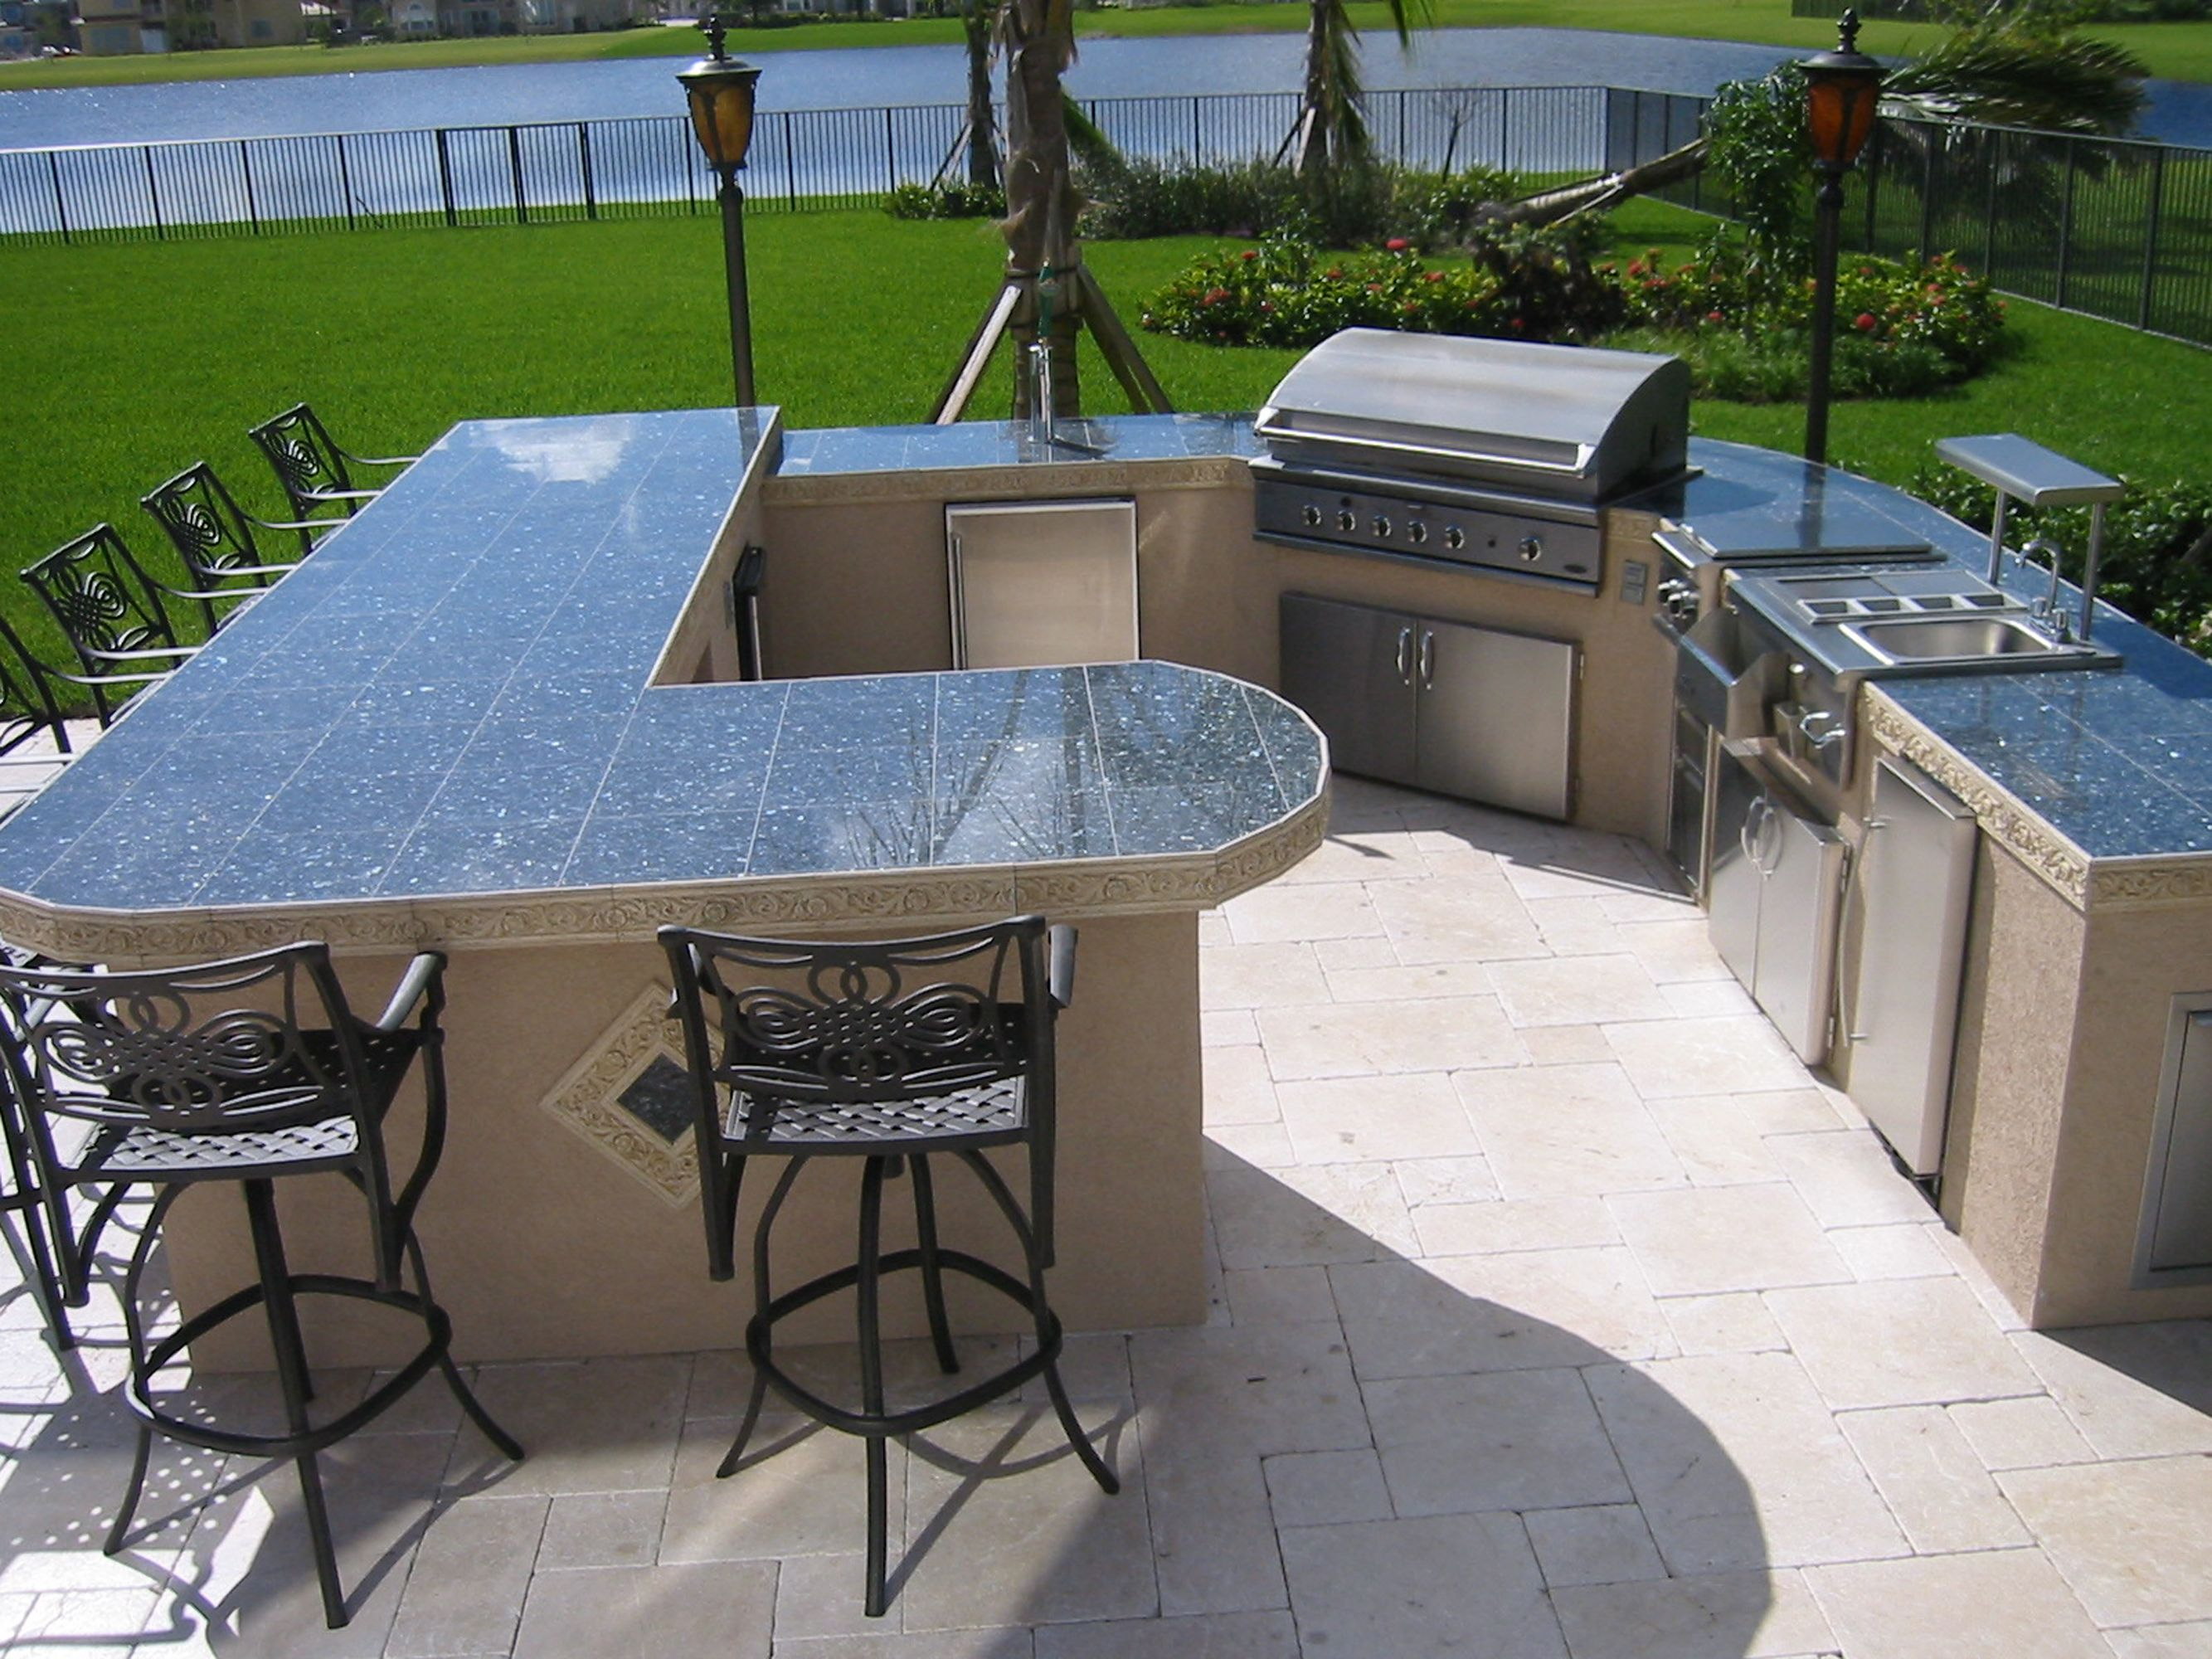 17 best images about backyard bbq station on pinterest backyards grill station and built in grill - Bbq Design Ideas